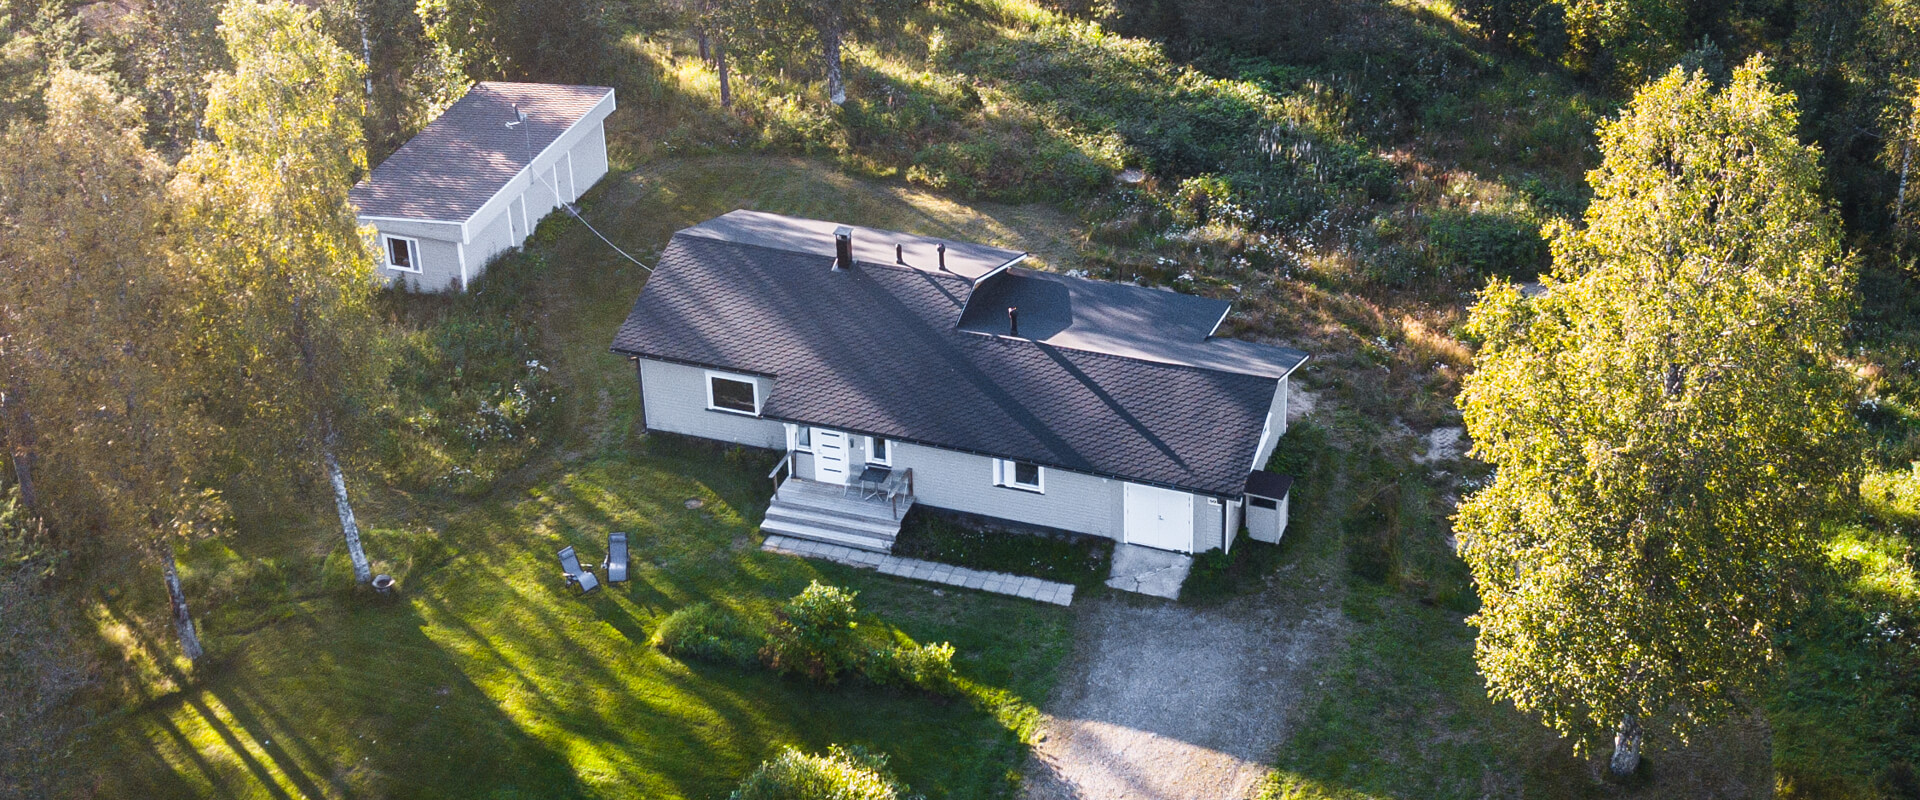 Aerial view of the Haistila cottage in summer